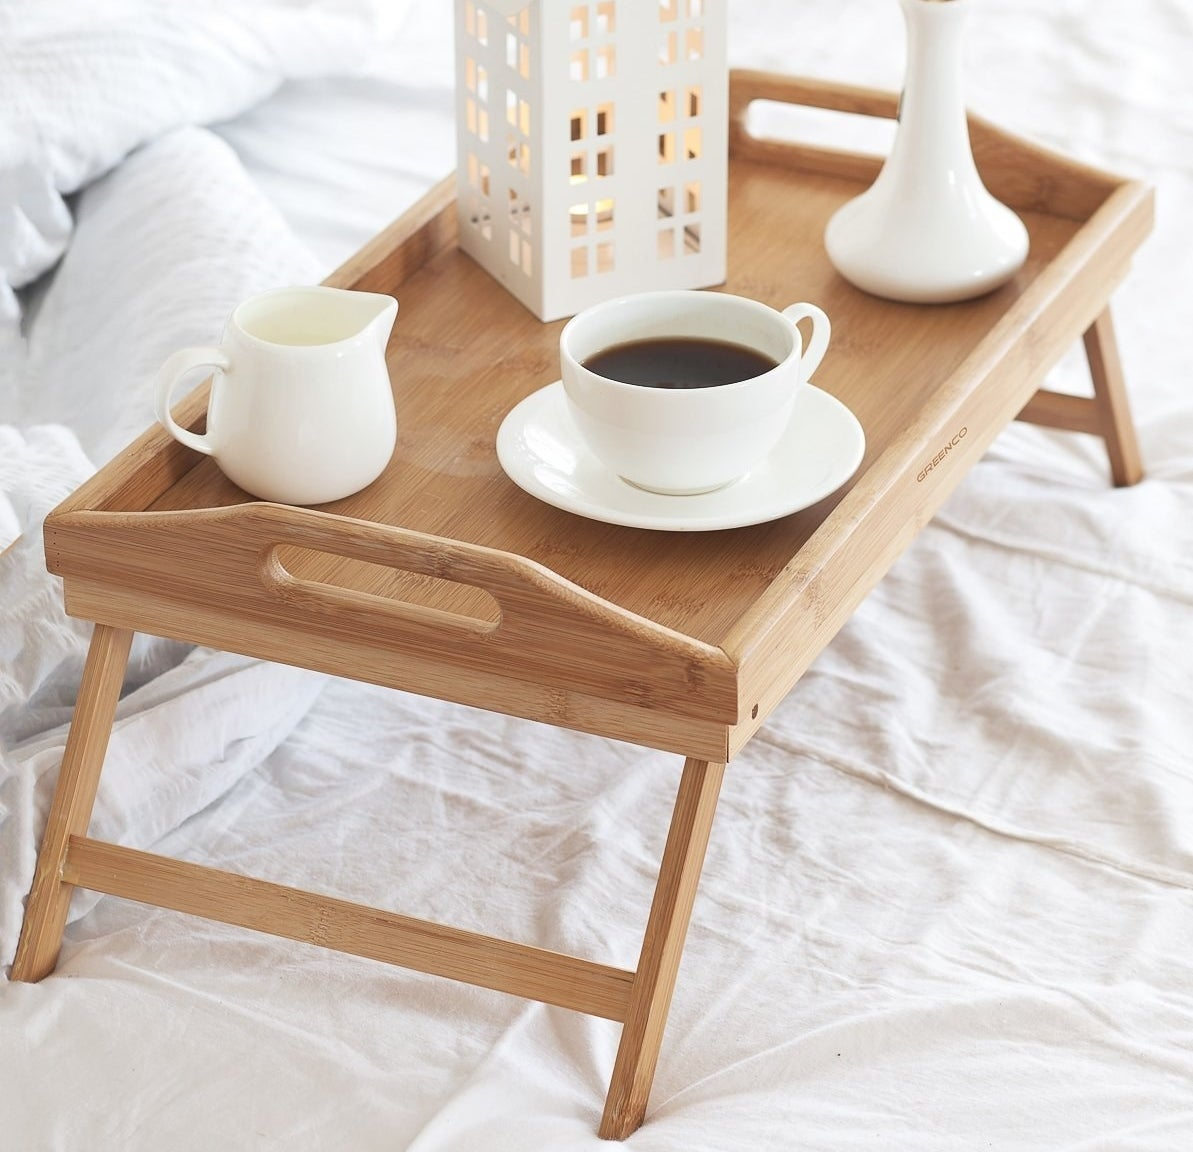 The foldable table placed in bed